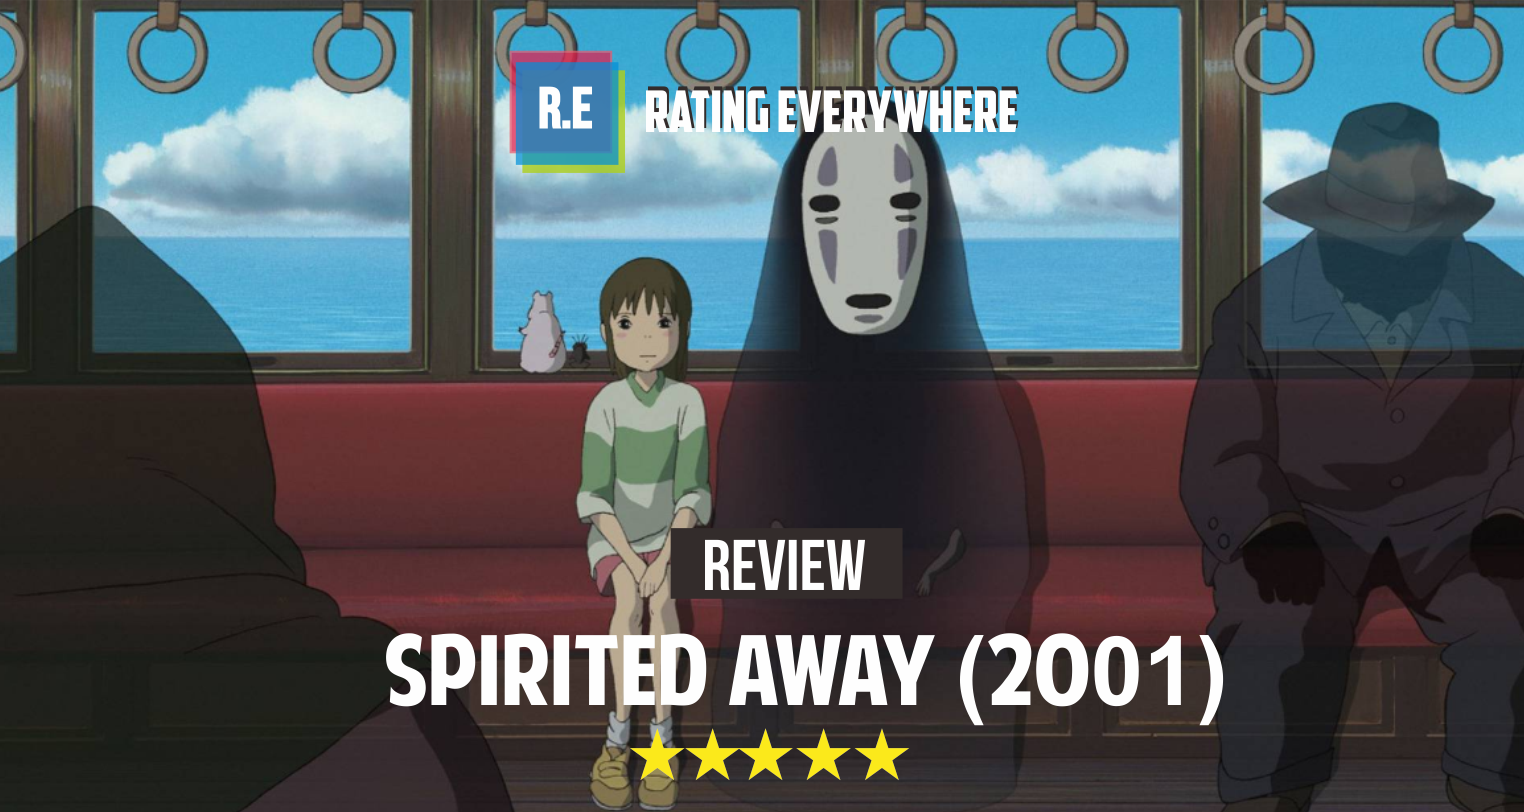 spirited away movie review Watch video spirited away is one of the most perfect movies i have ever seen  272 of 332 people found this review helpful was this review helpful to you.